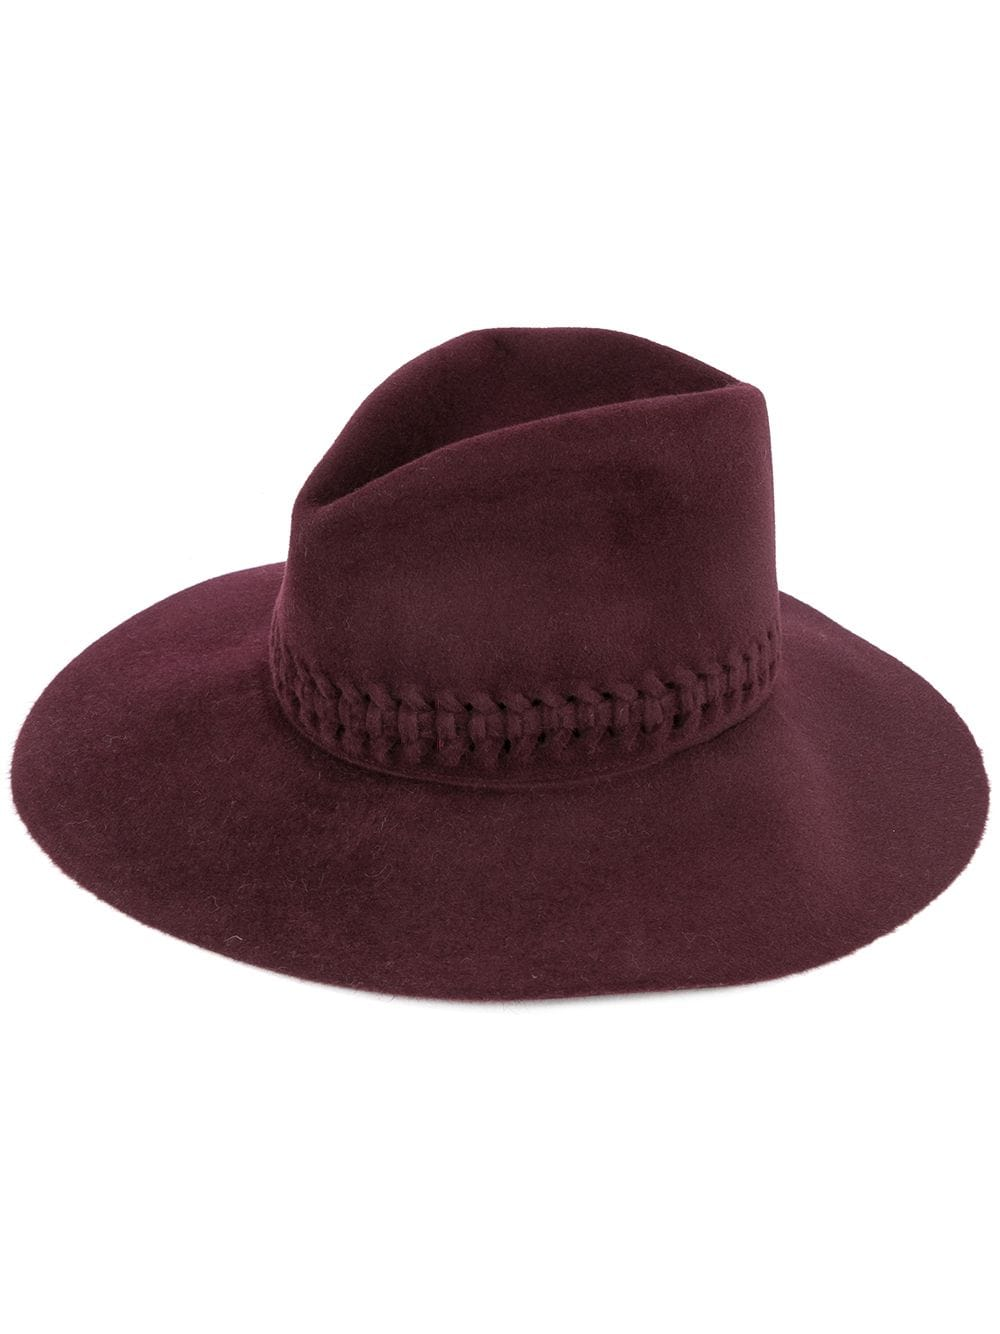 Lola Fretwork Hat in Garnet